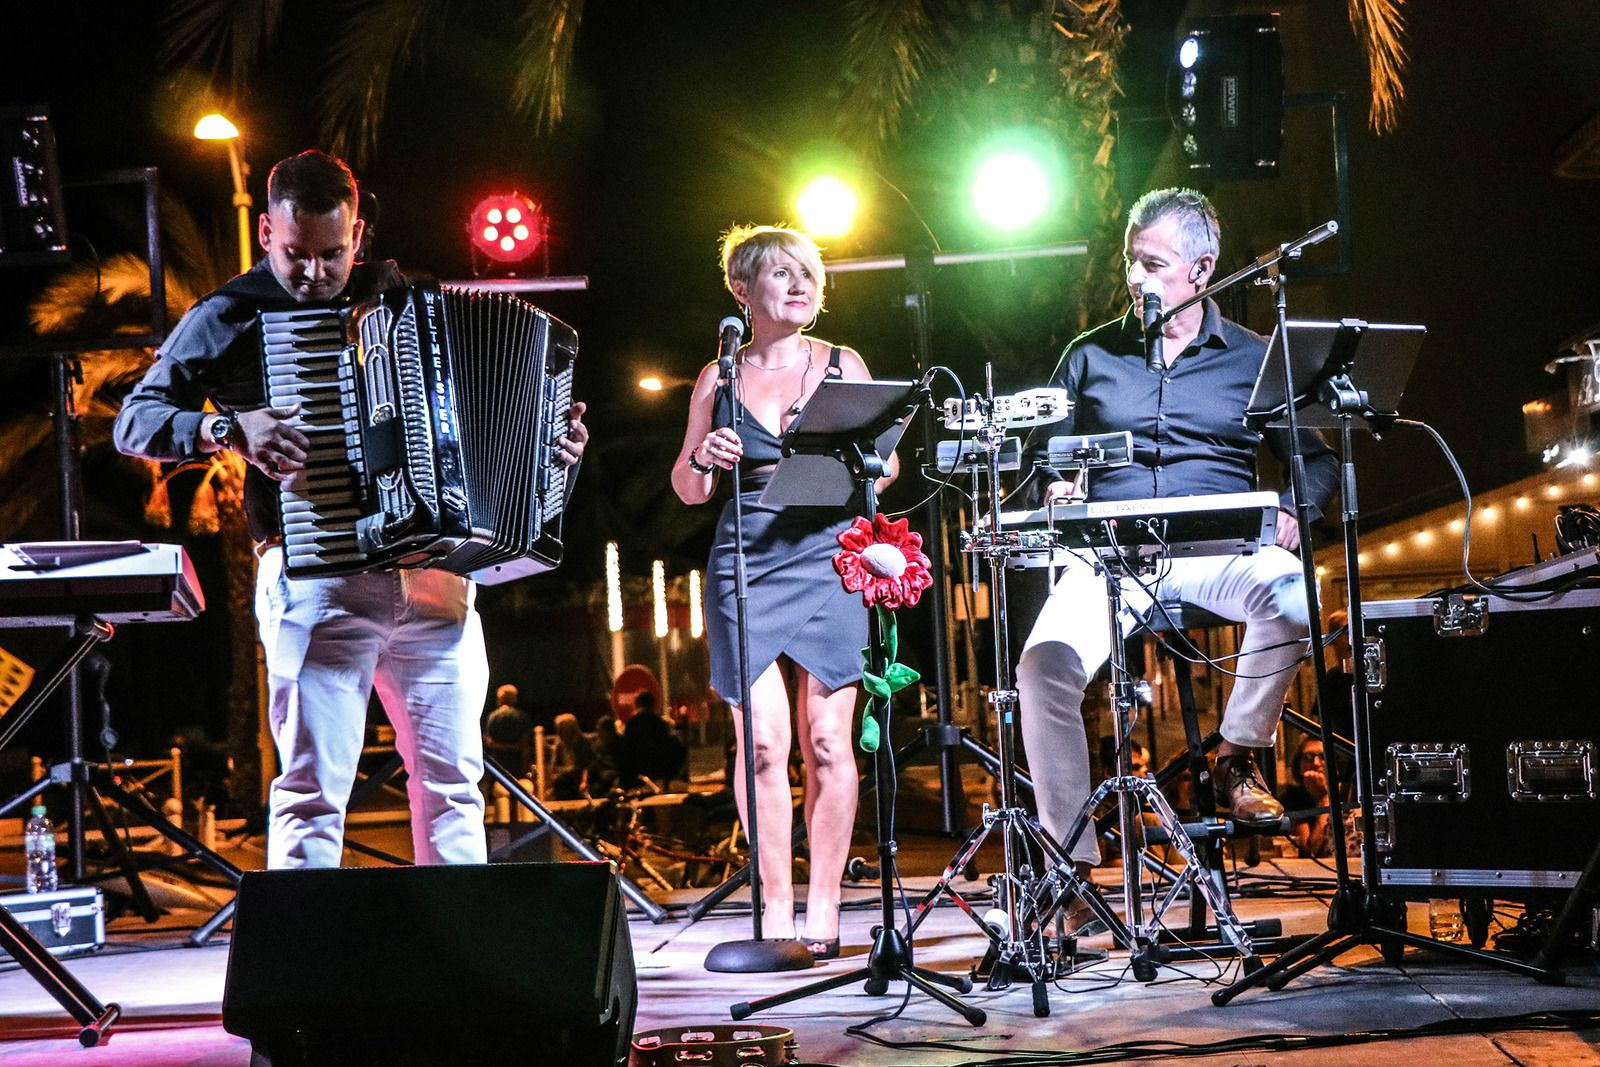 Animation musicale Vaucluse